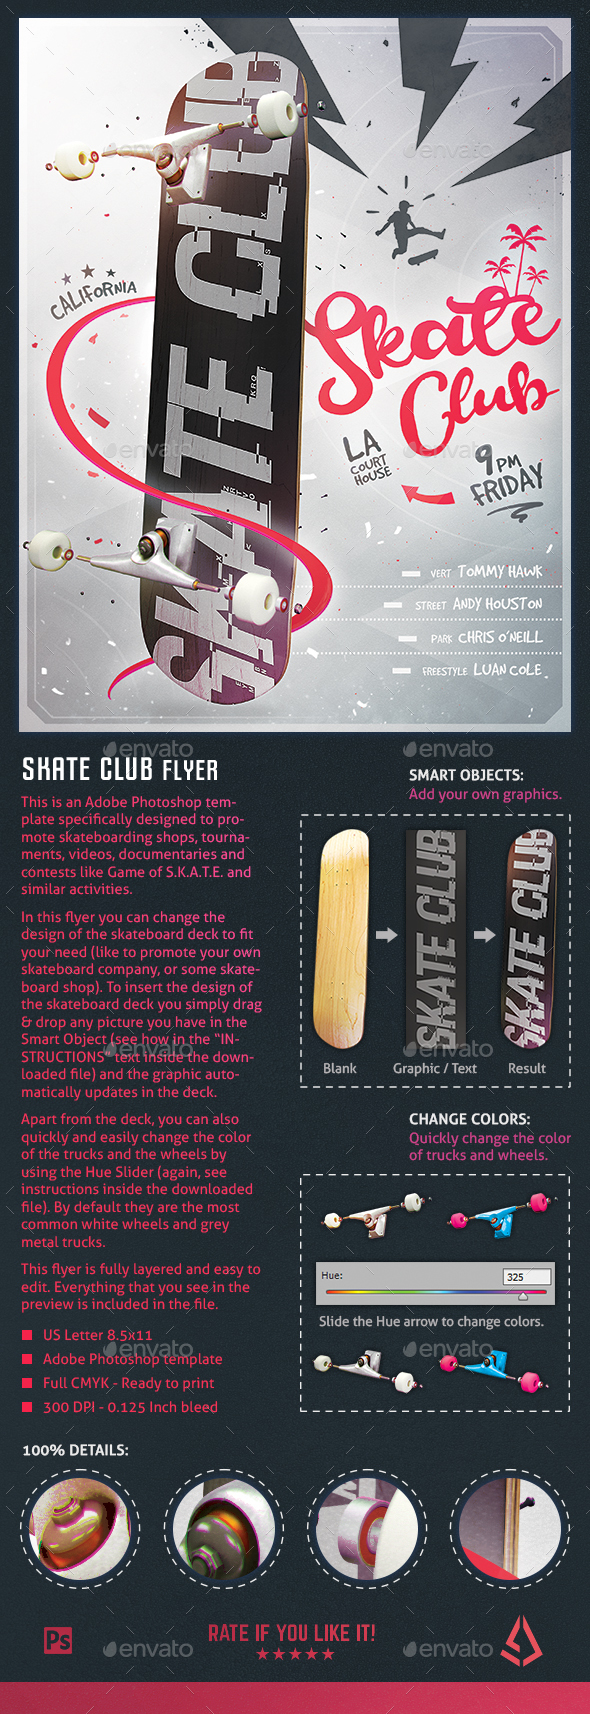 Skate Club Flyer - Skateboard Mockup Poster Template - Sports Events